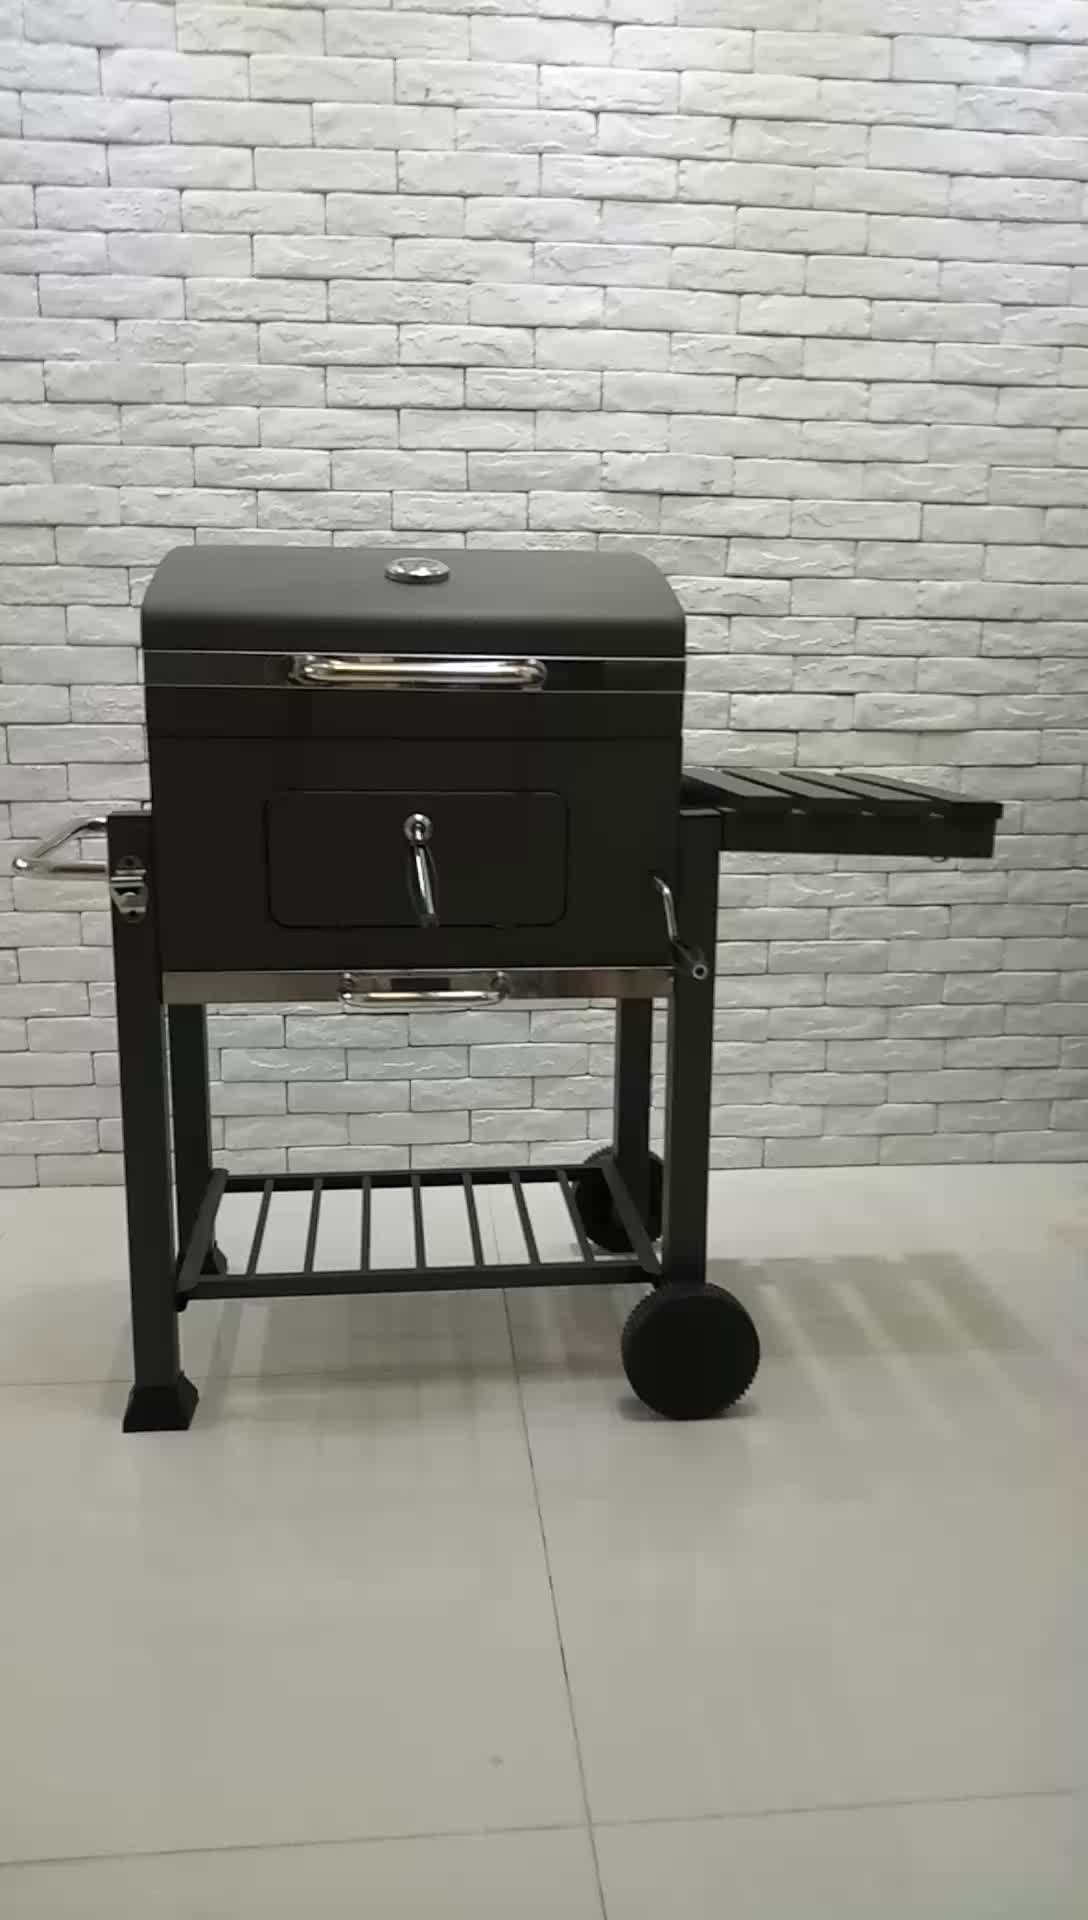 Extra Large Heavy Duty Charcoal BBQ Somker Grill For Outdoor Barbecue